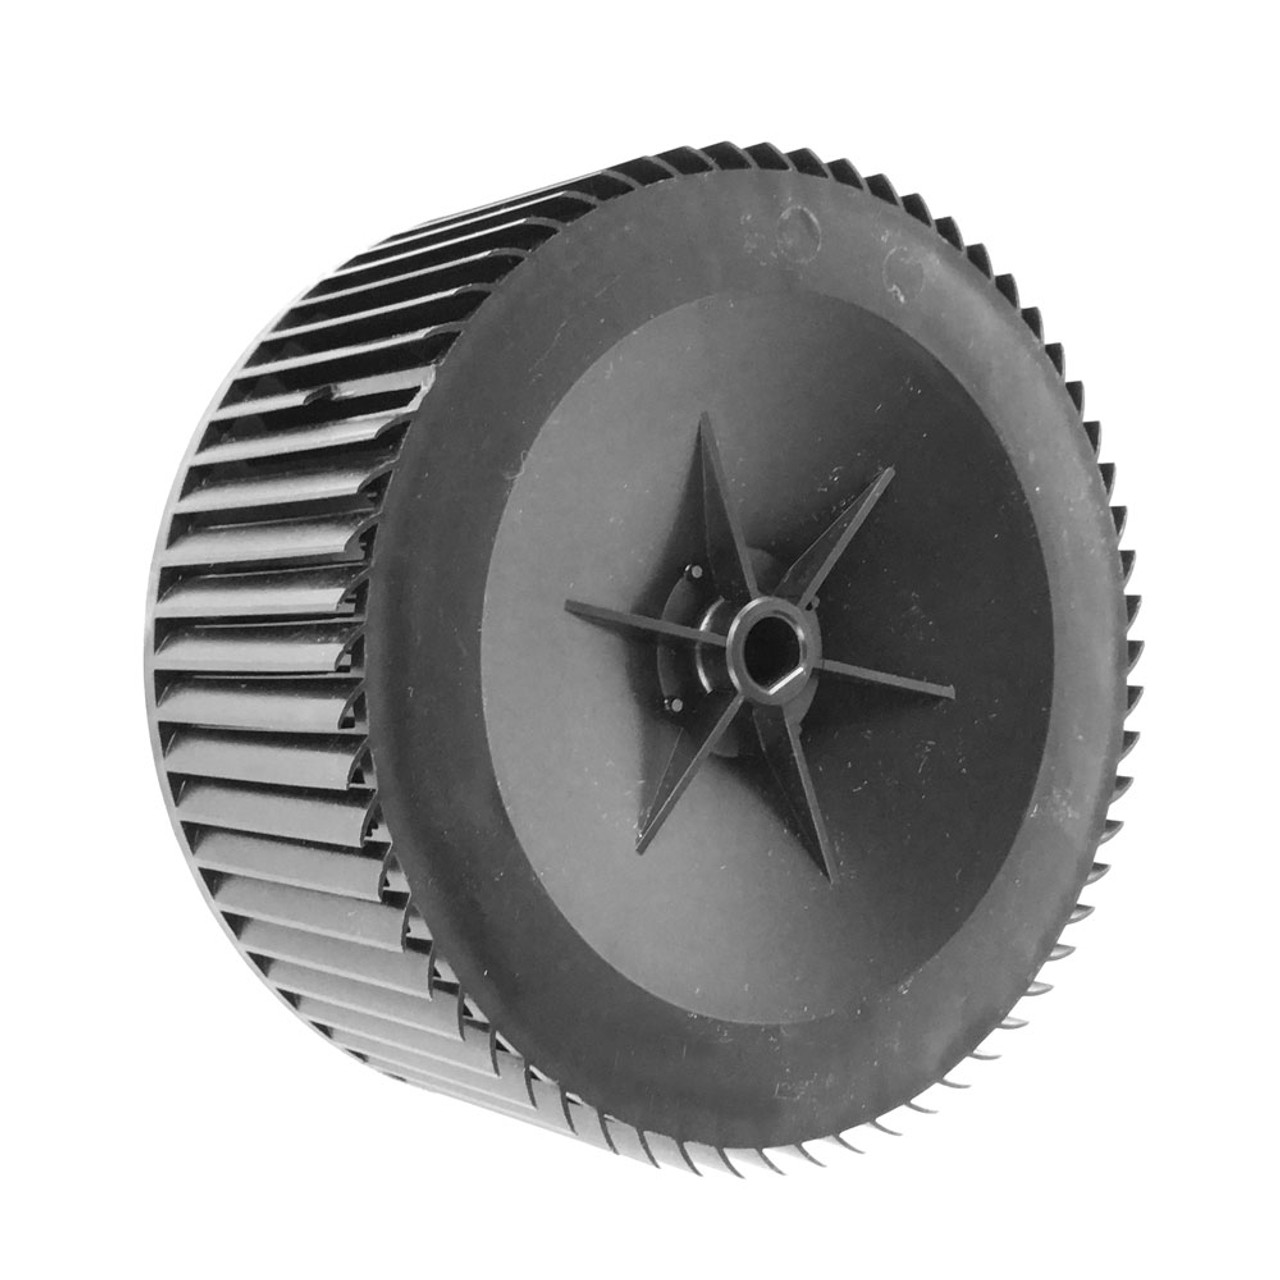 Coleman Mach 1472-1091 OEM RV Air Conditioner Blower Wheel